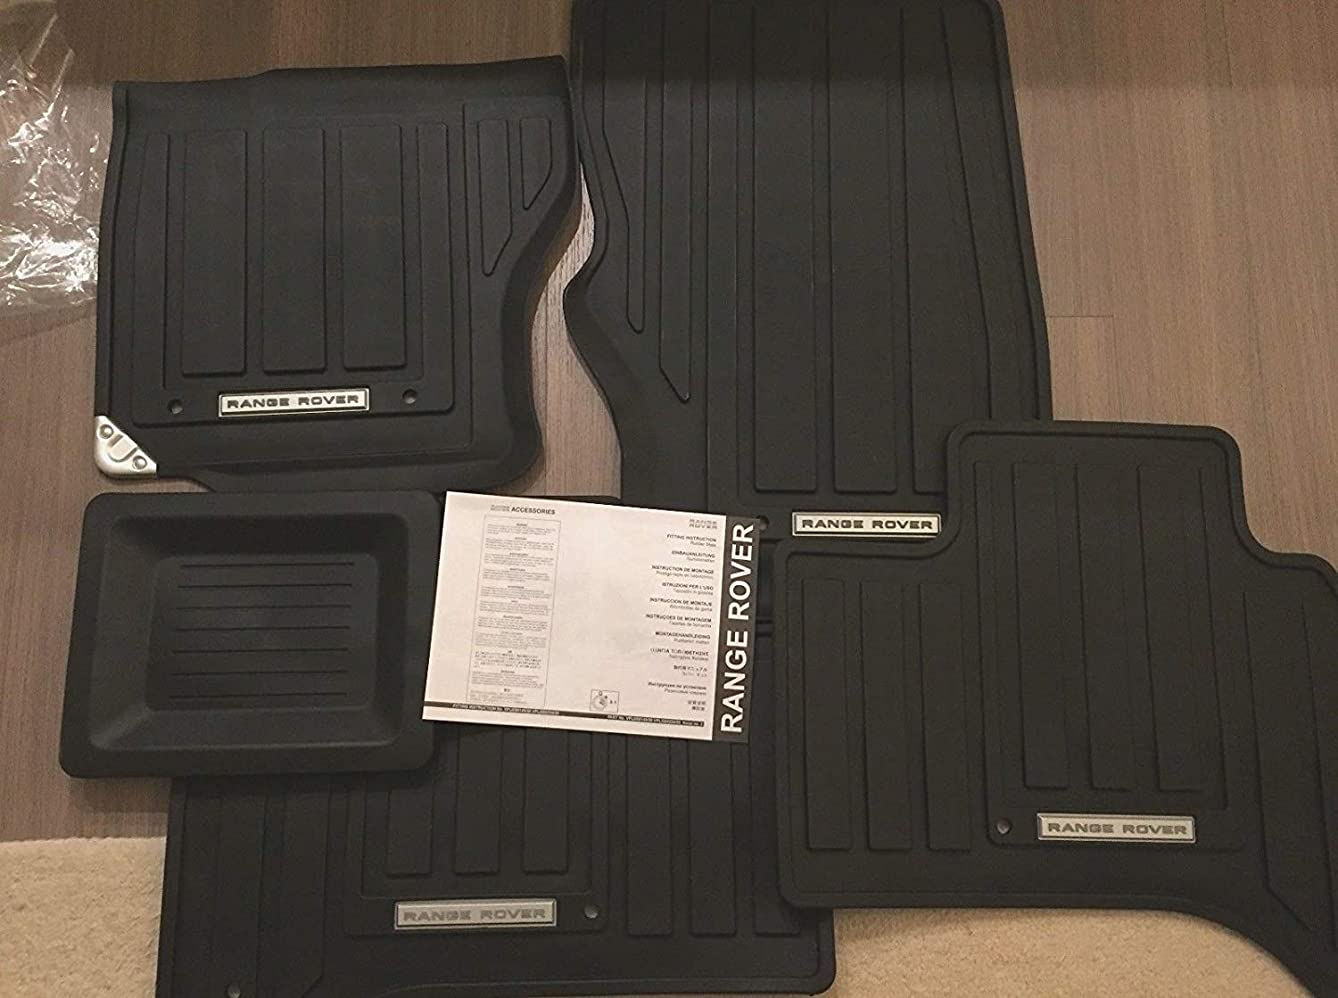 Genuine Land Rover VPLGS0150 Rubber Floor Mats